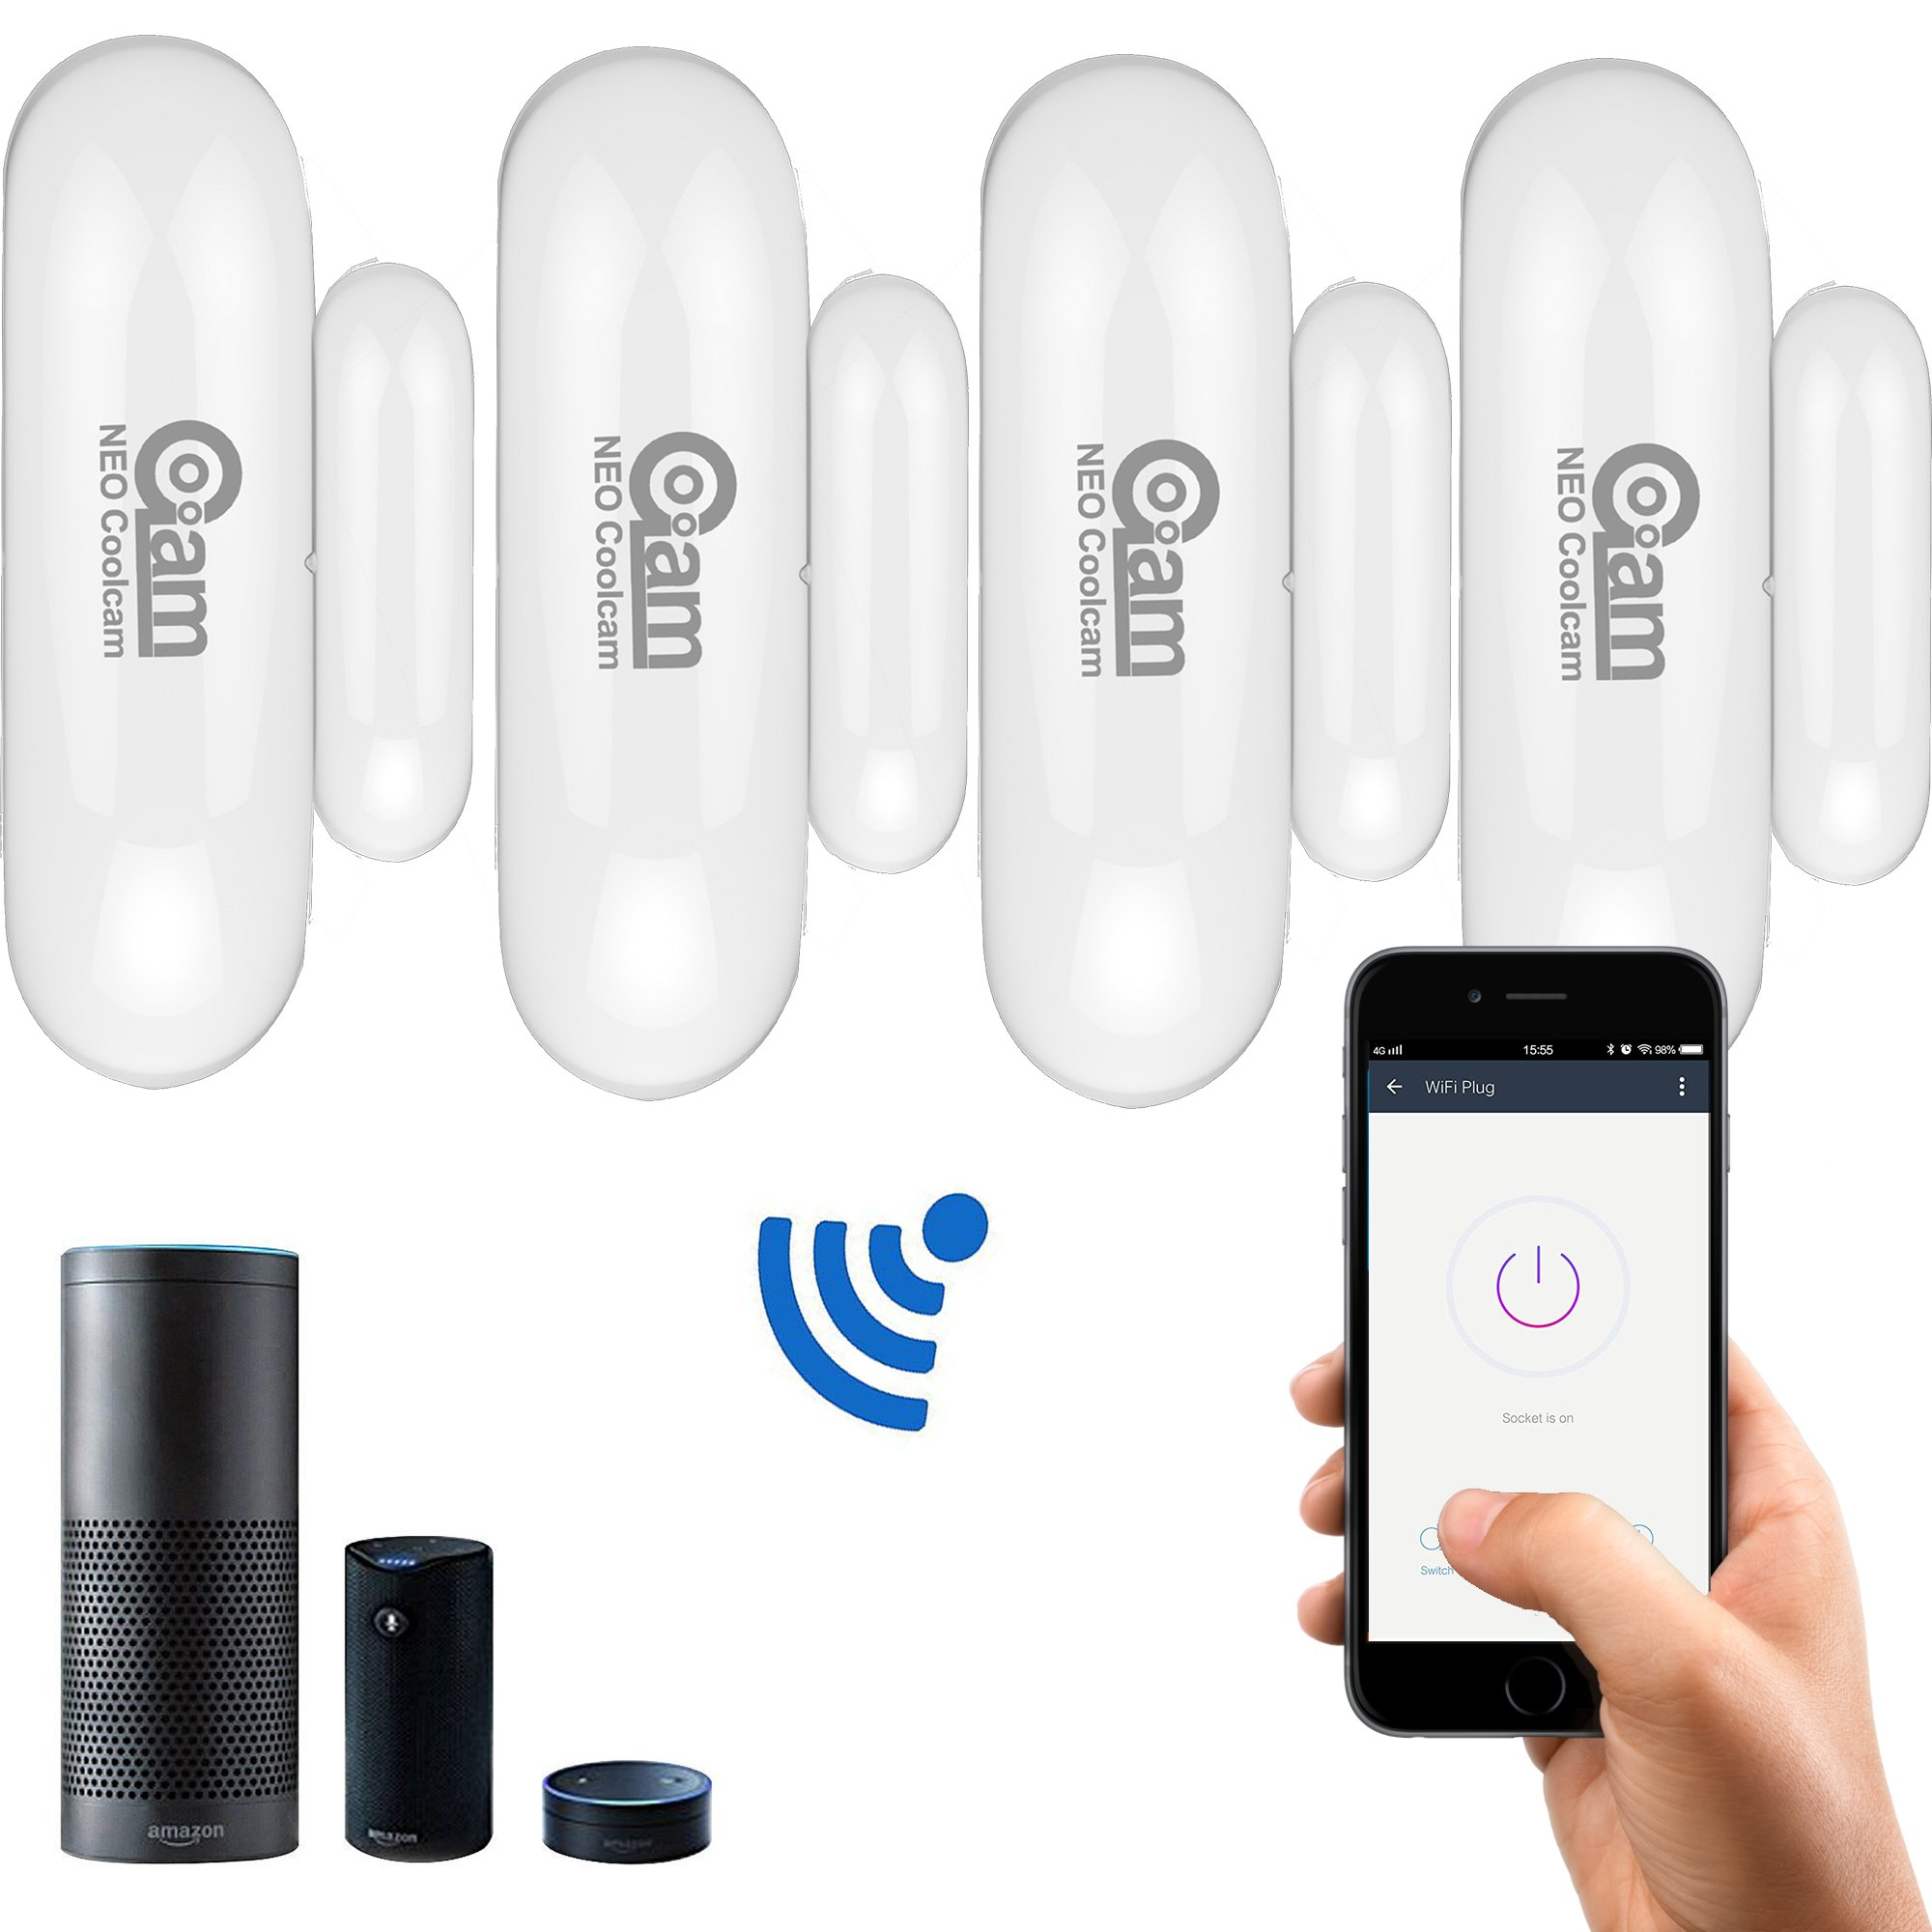 Coolcam WiFi Door Window Sensor Discreet and Compact Size Compatible with Alexa and Google Home